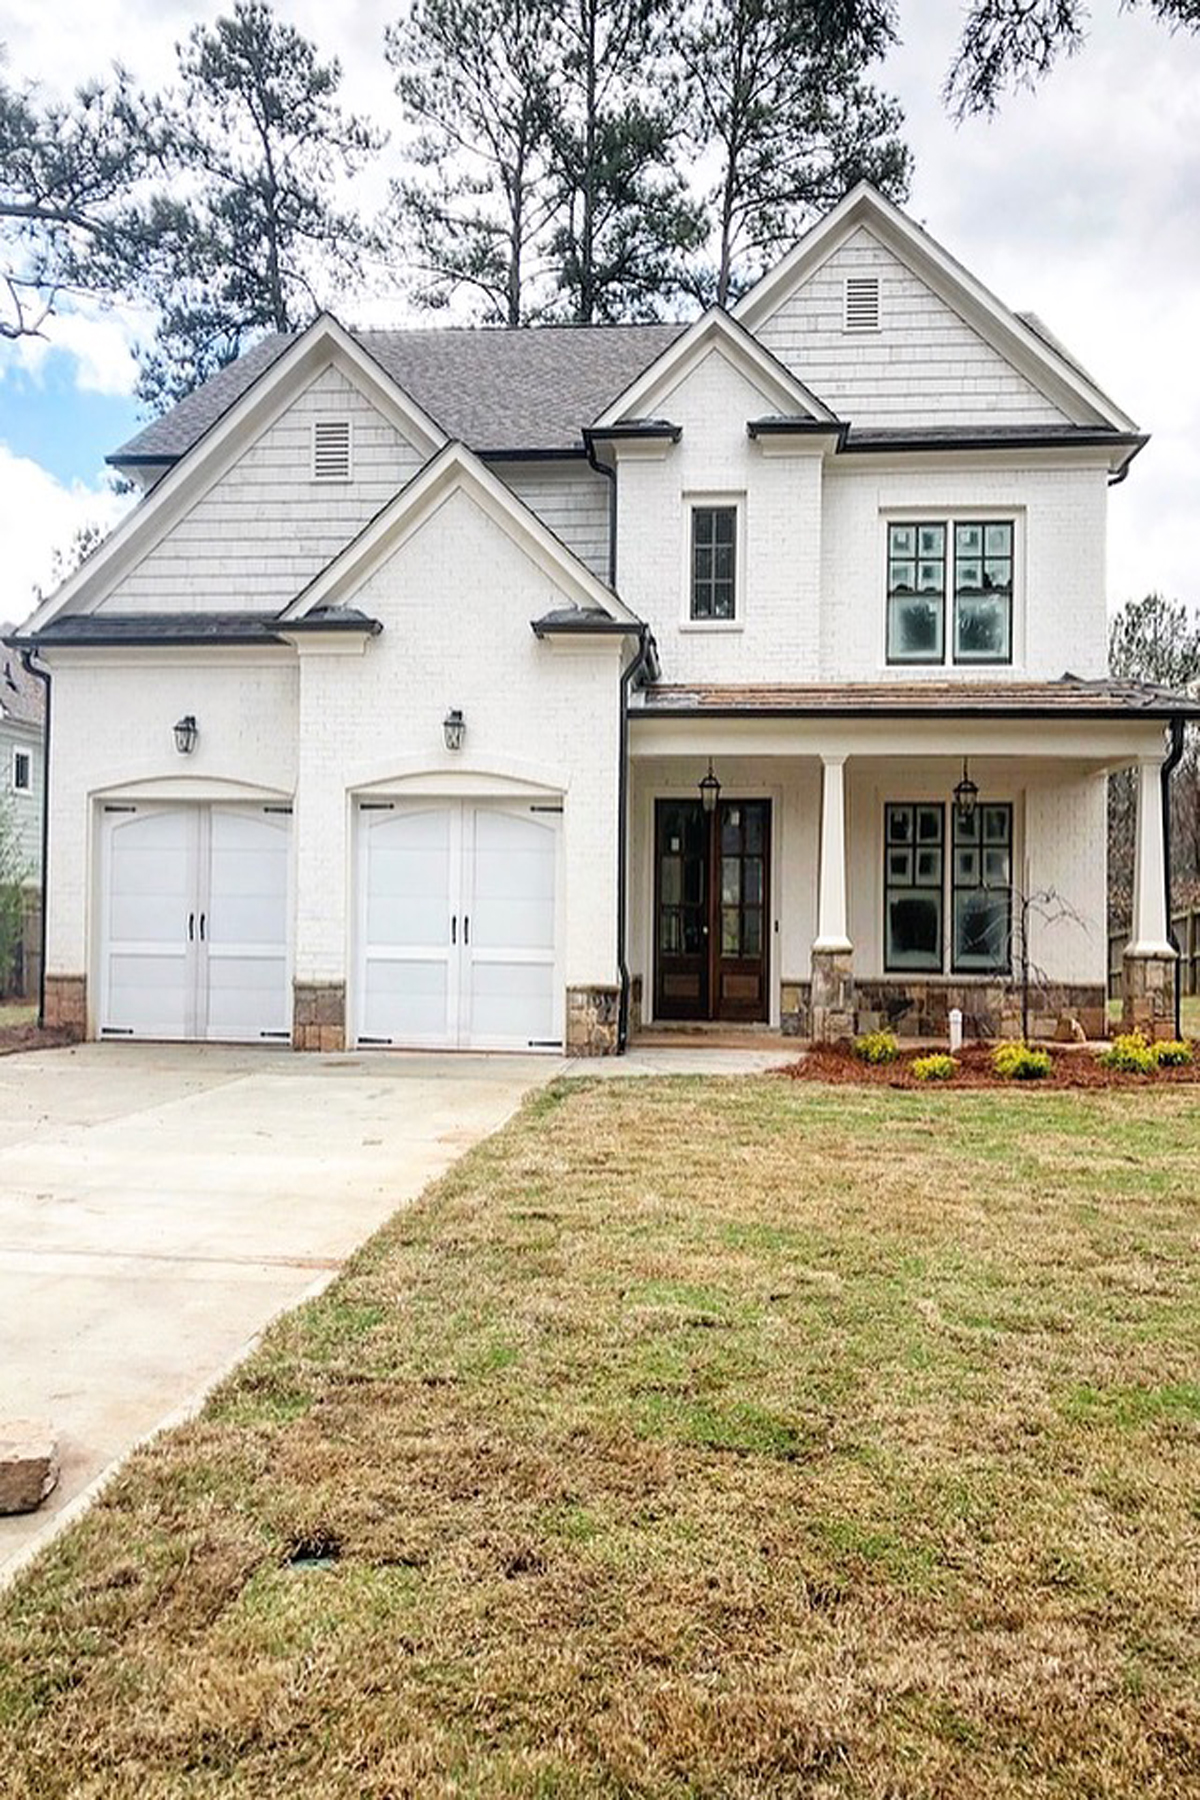 Single Family Home for Sale at Gorgeous New Construction In Ashford Park 1919 9th Street Chamblee, Georgia 30341 United States